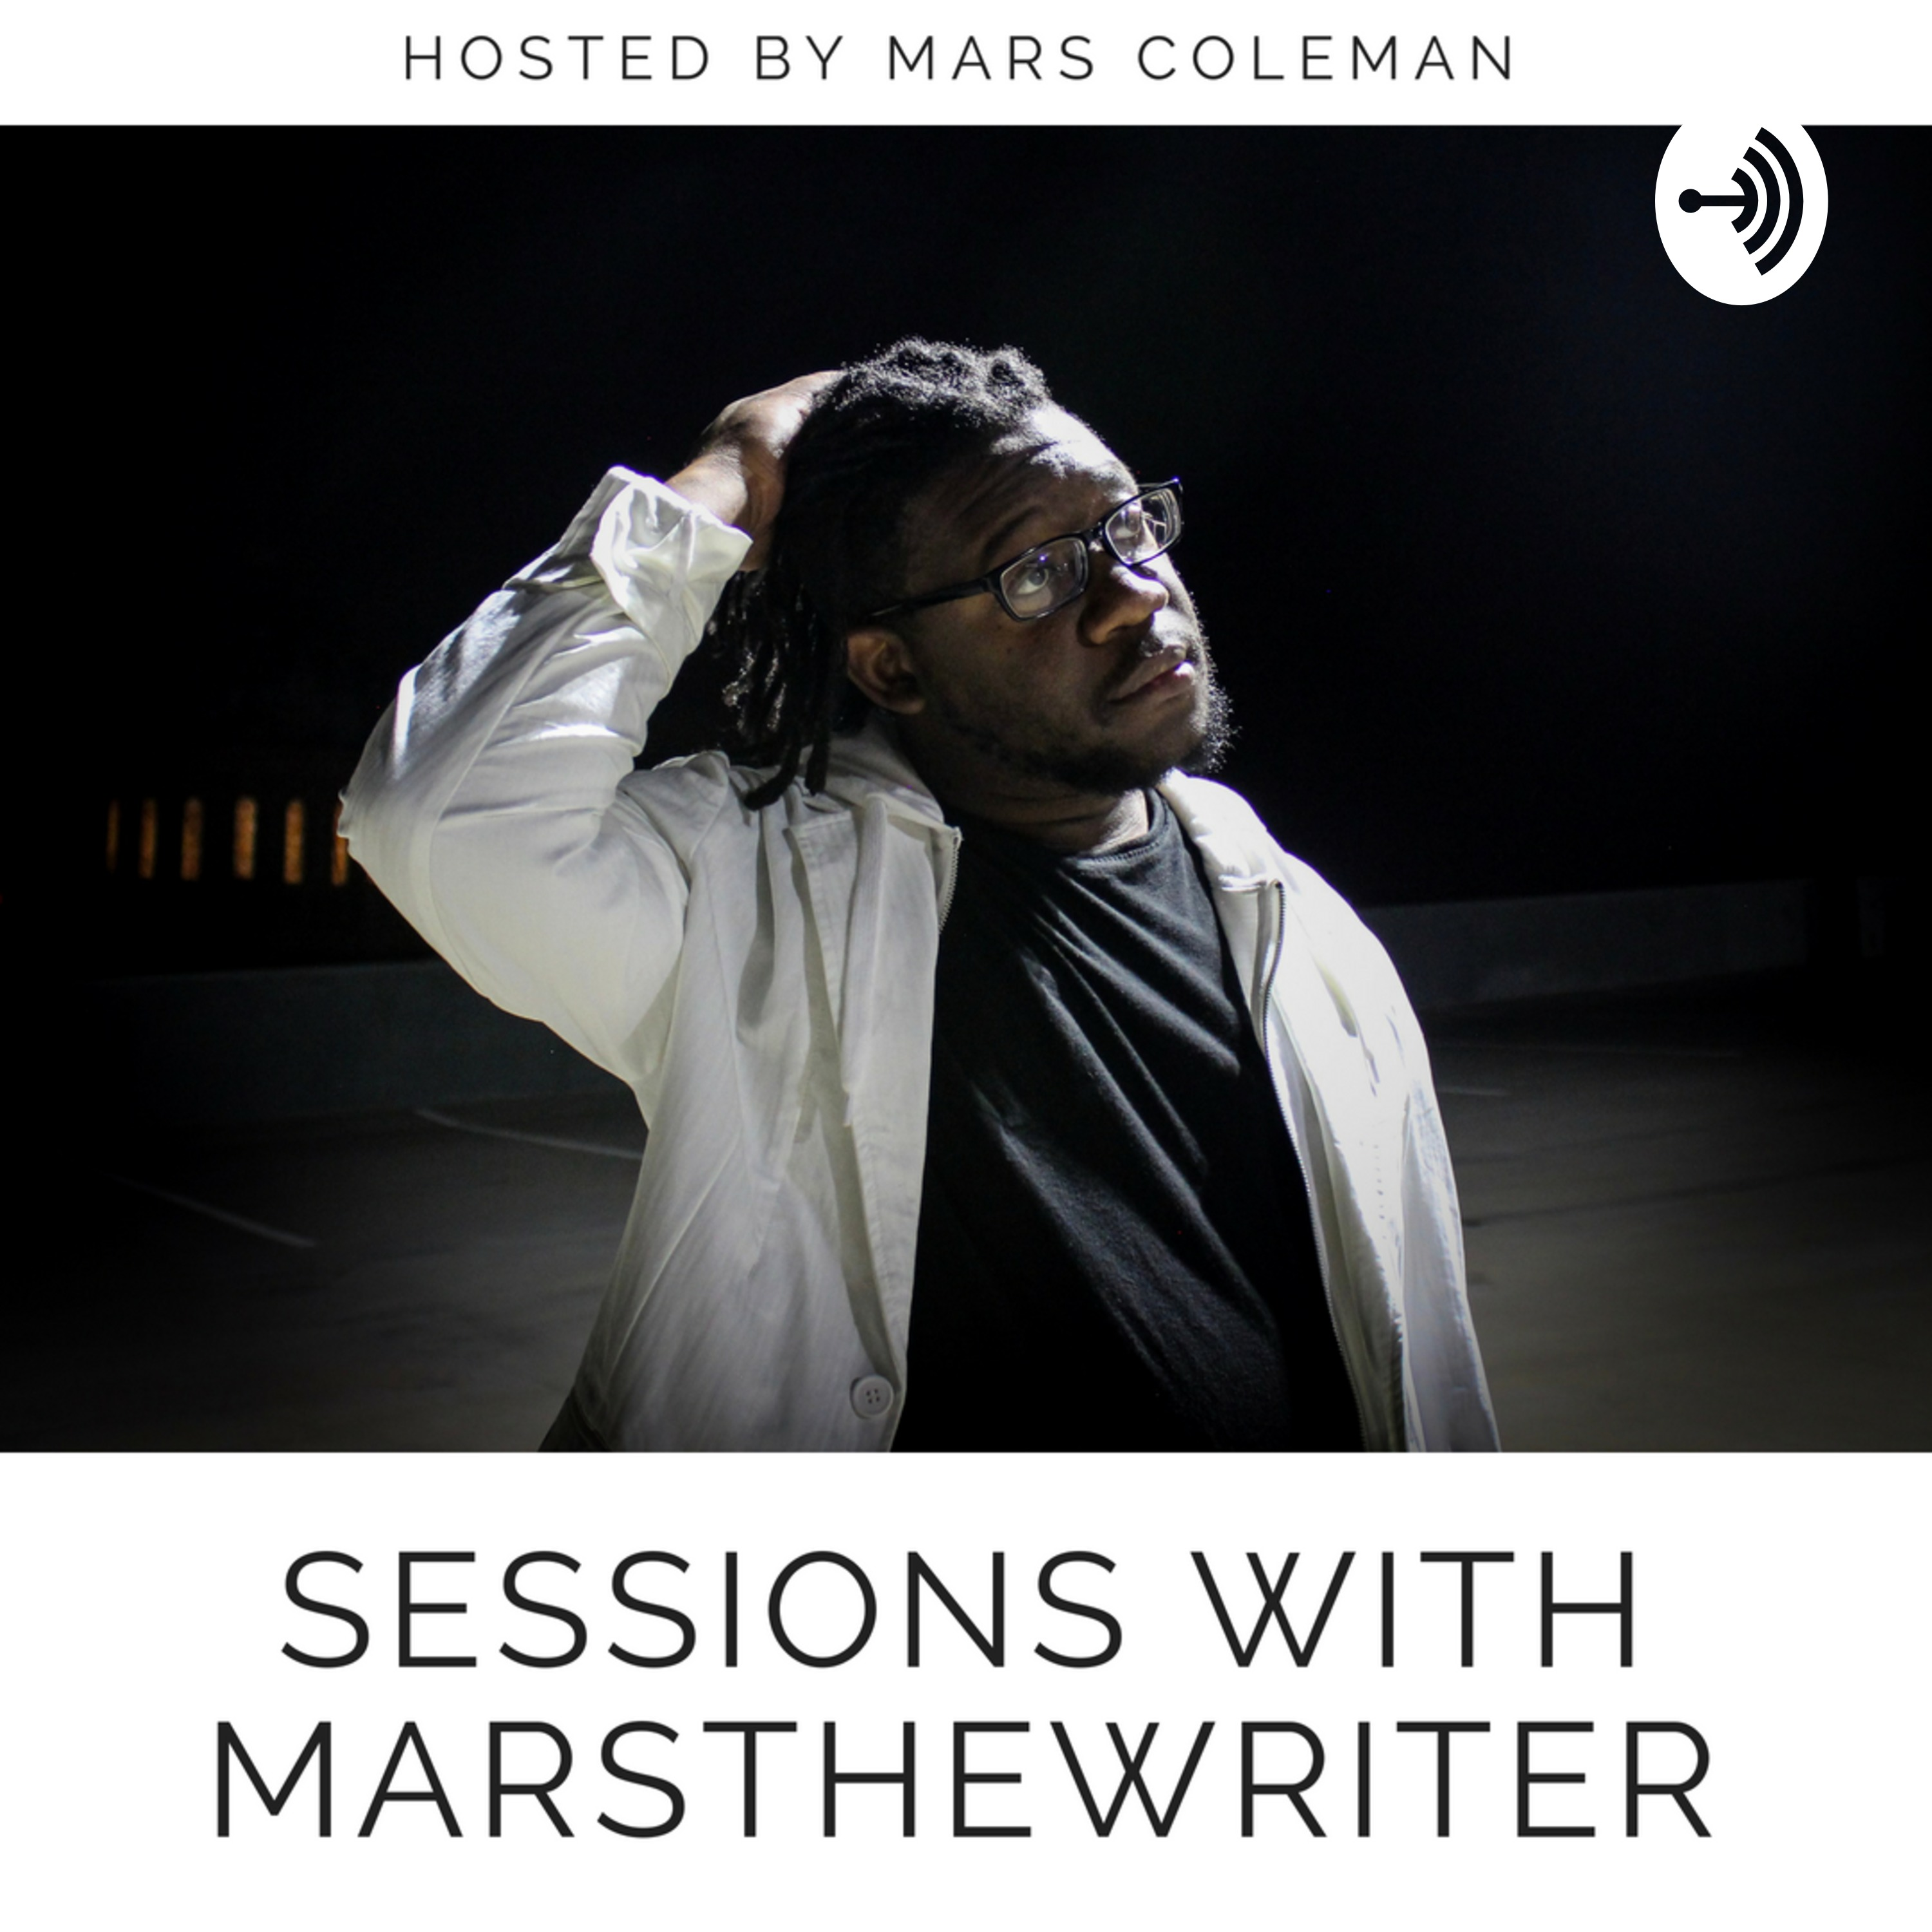 Sessions with MarsTheWriter